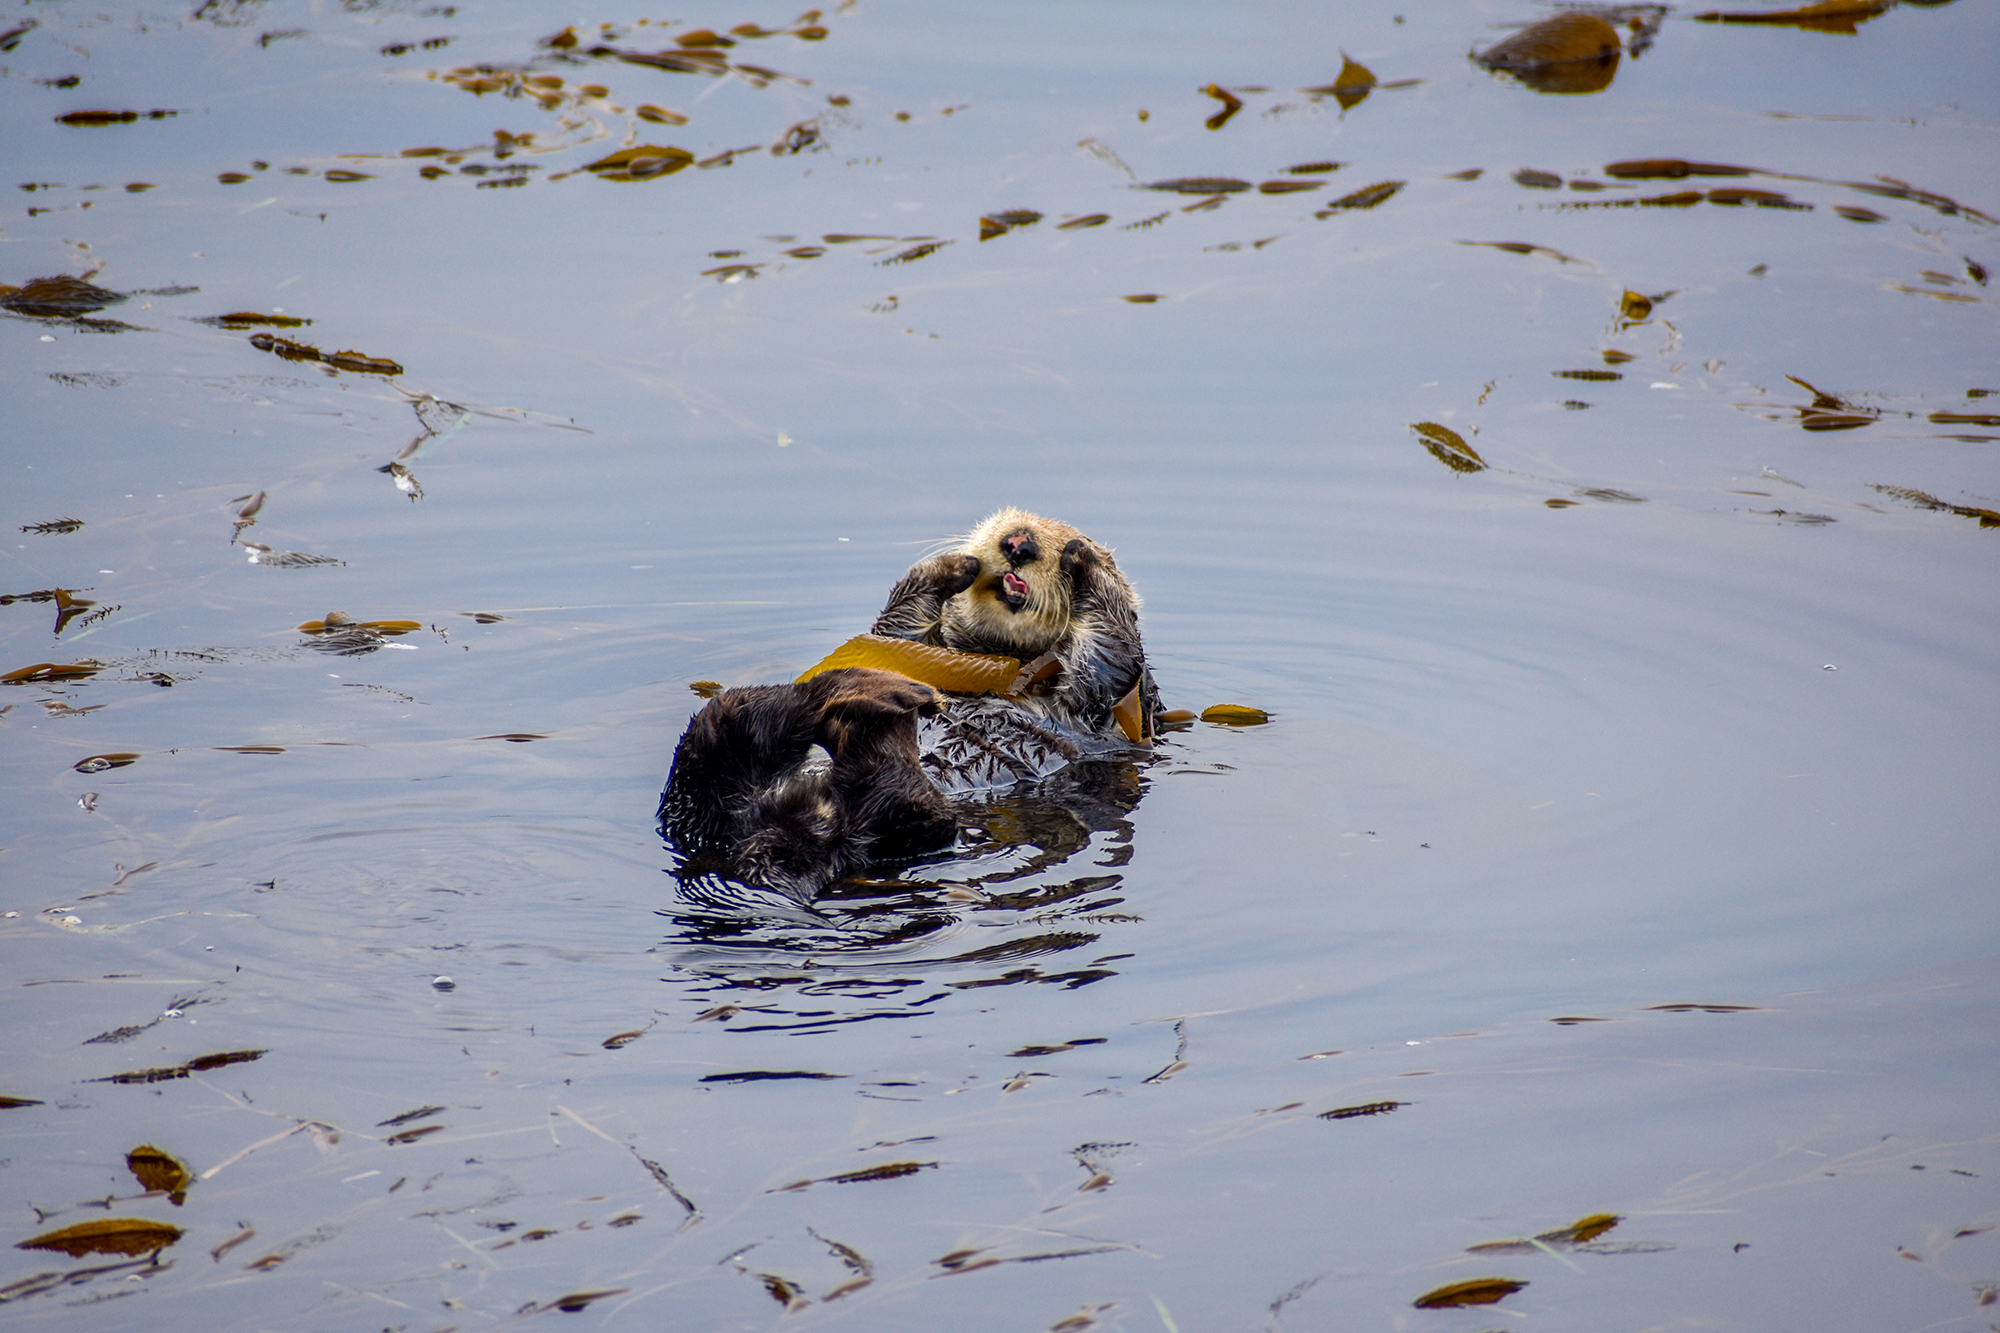 Sea otter sticks his tongue out while resting.